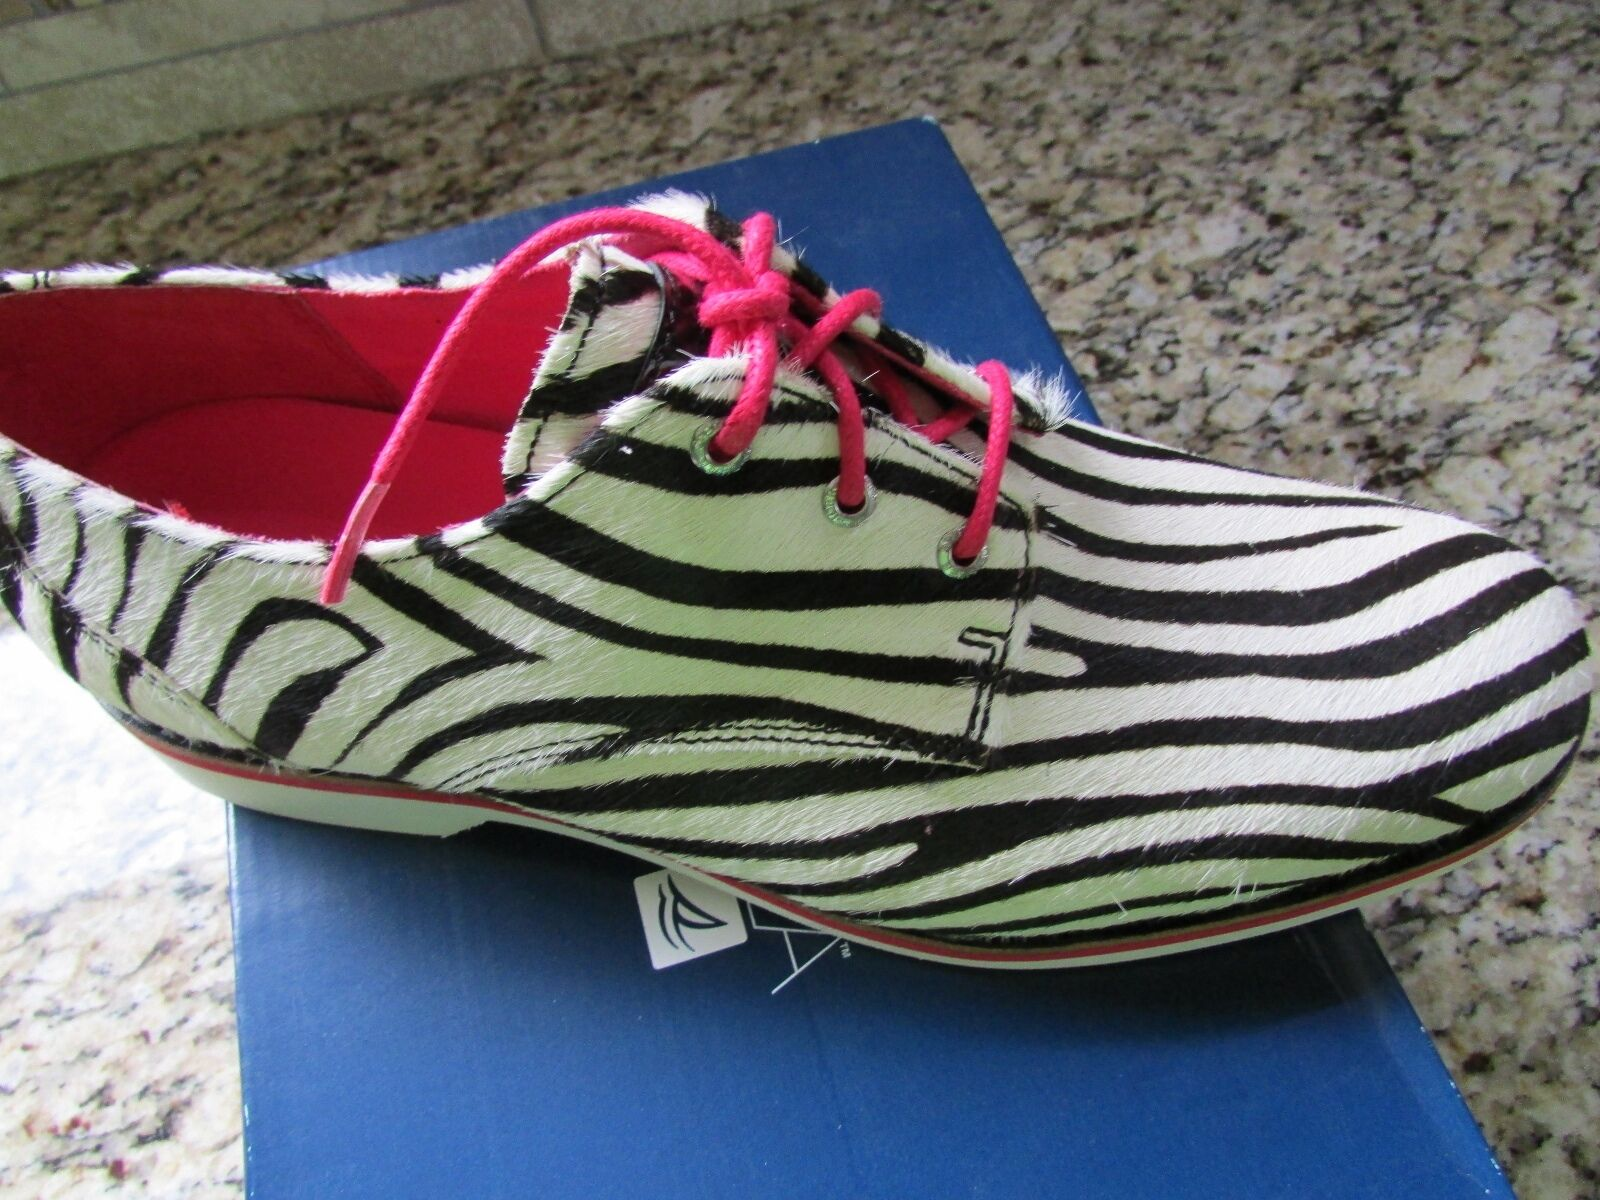 NEW SPERRY TOP-SIDER DELANCEY ZEBRA PRINT OXFORD SHOES Donna 8 FREE SHIP